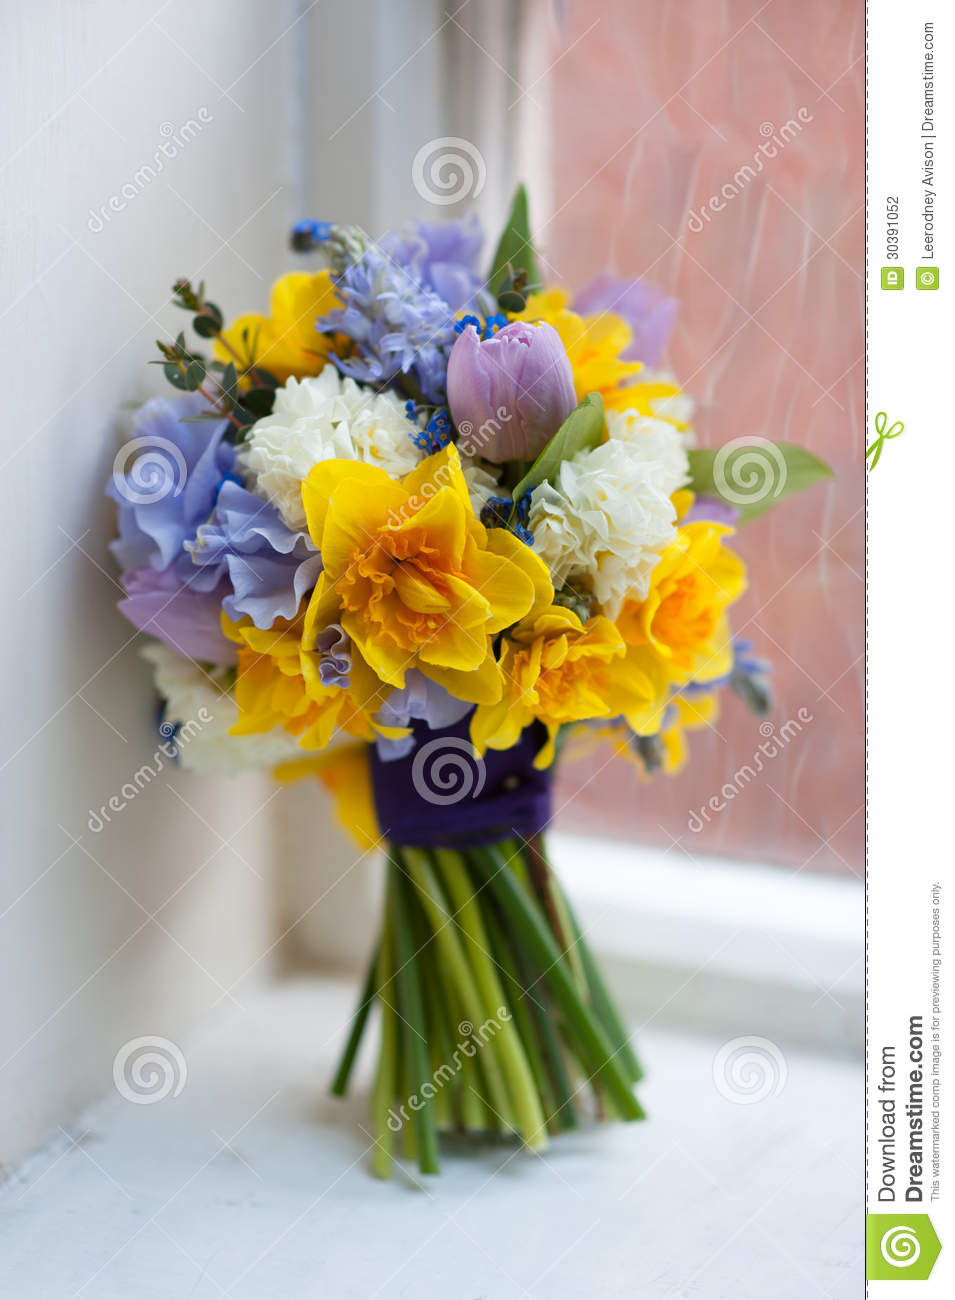 Wedding bouquet of spring flowers stock photo image of wedding wedding bouquet of spring flowers junglespirit Image collections